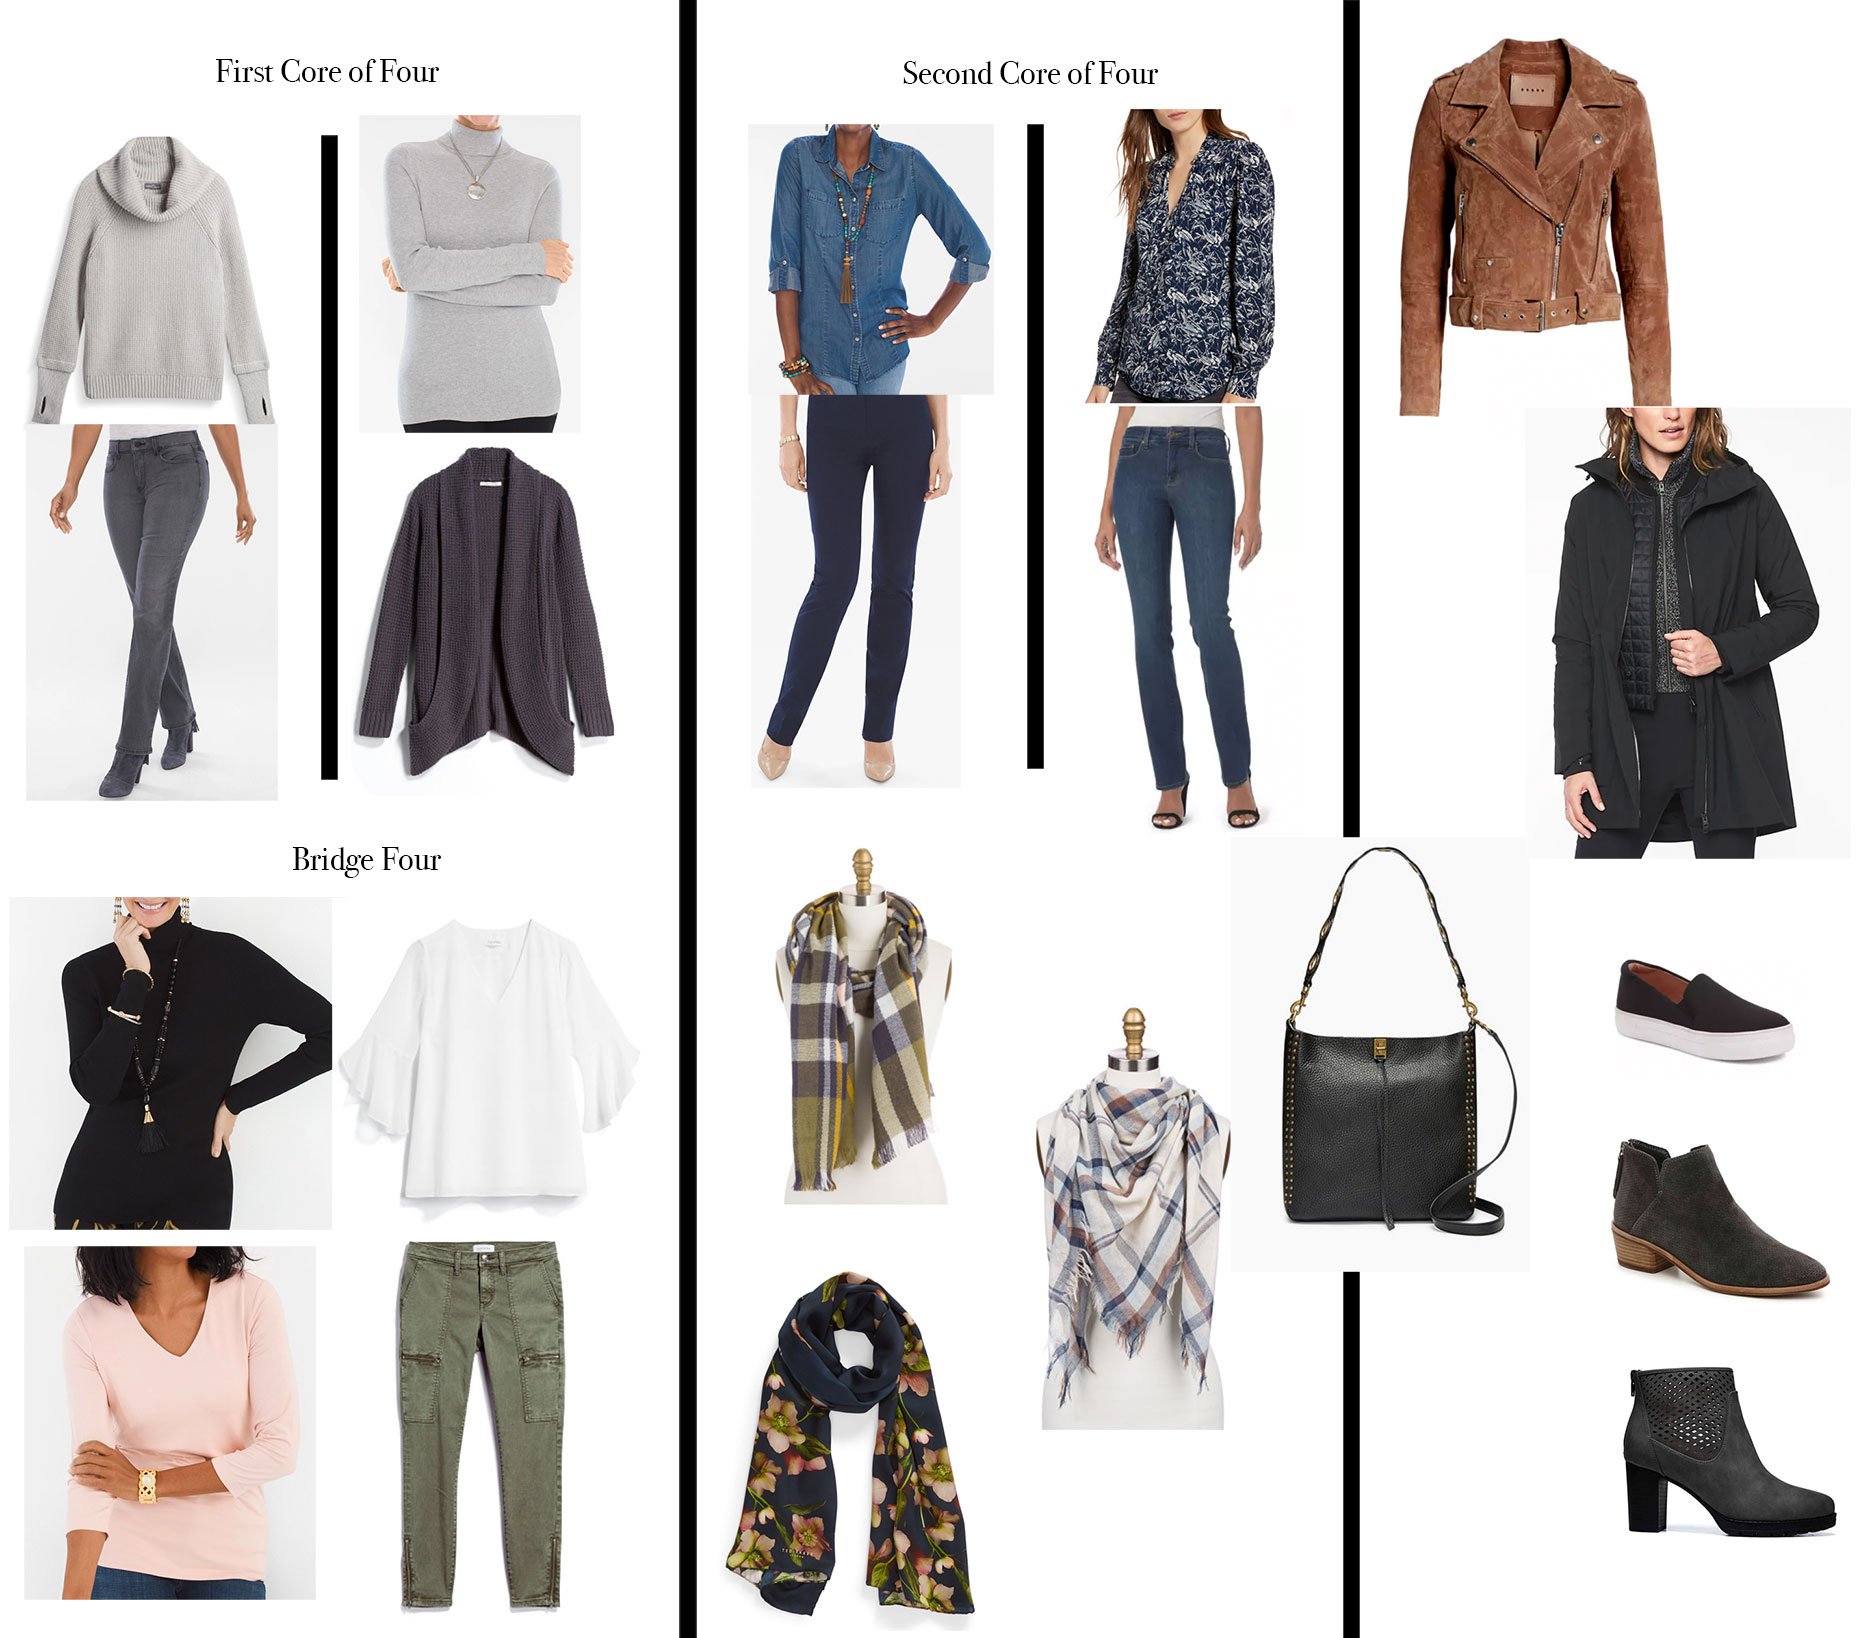 ebbef90885d Travel capsule wardrobe planned around core neutrals of grey and blue.  Clothes come from Chico s